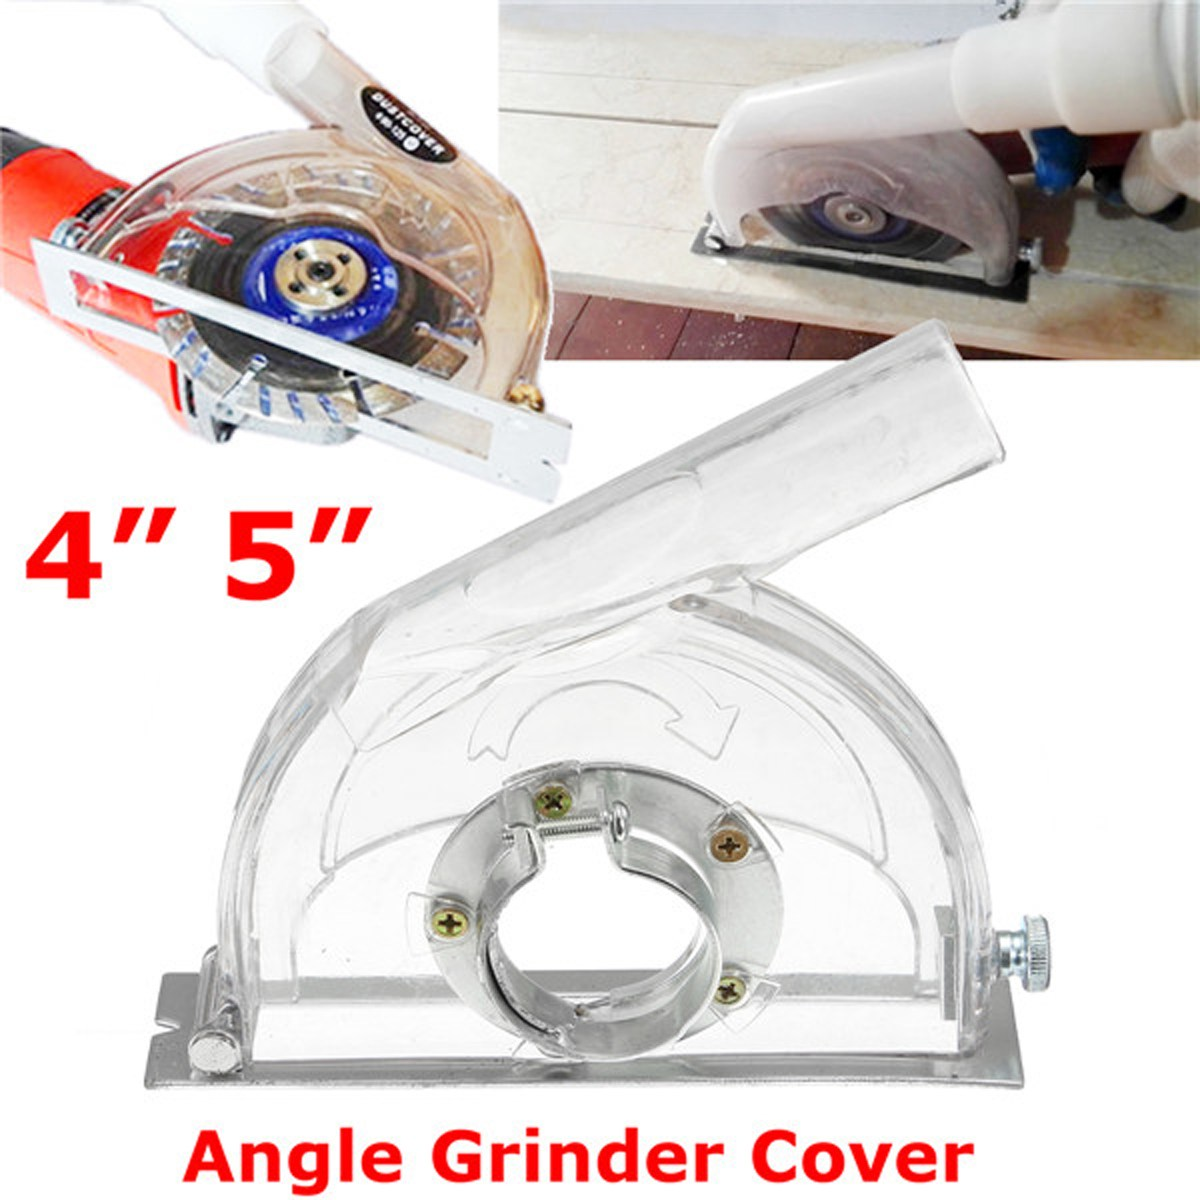 Convertible Transparent Grinding Dust Cover For 45 Angle Grinder & 3/4/5